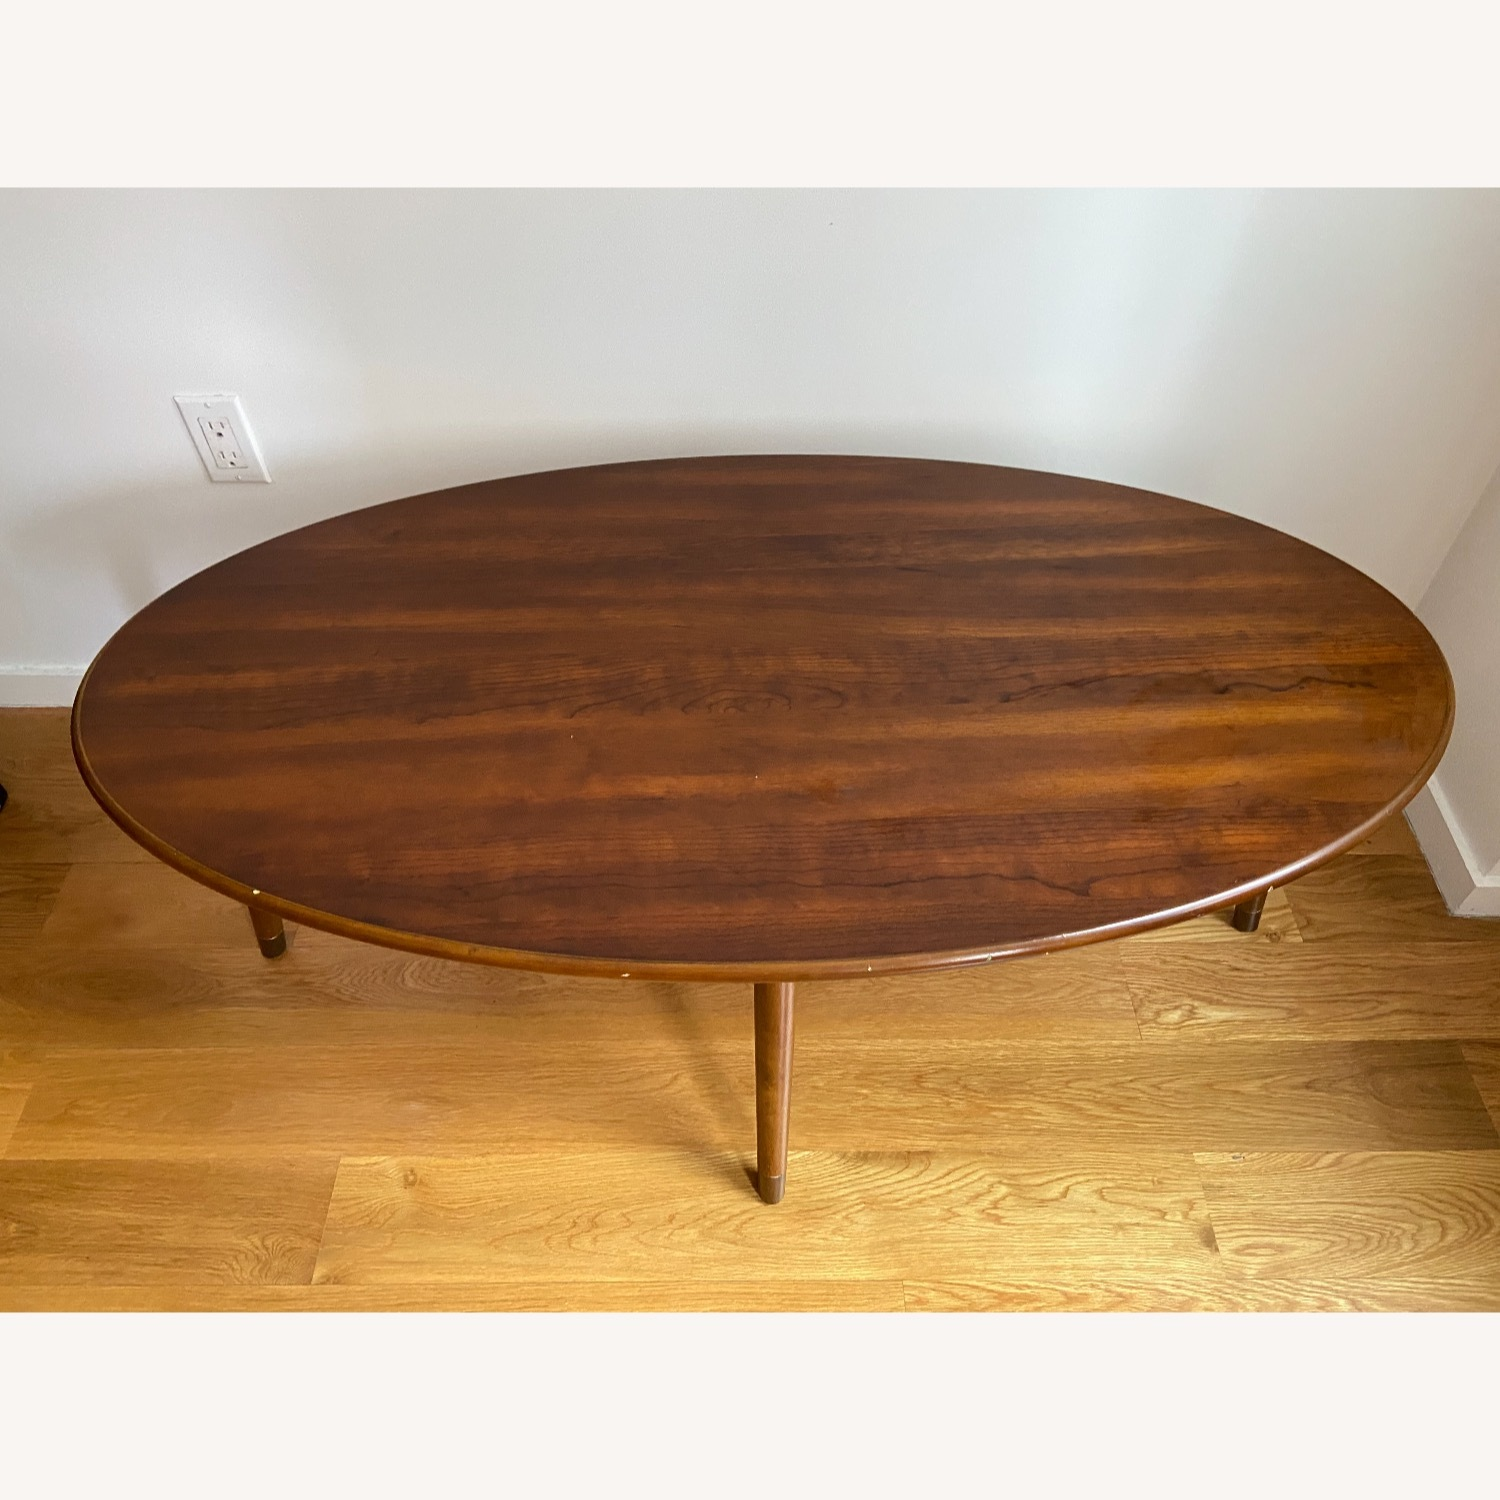 Pier 1 Coffee Table - AptDeco